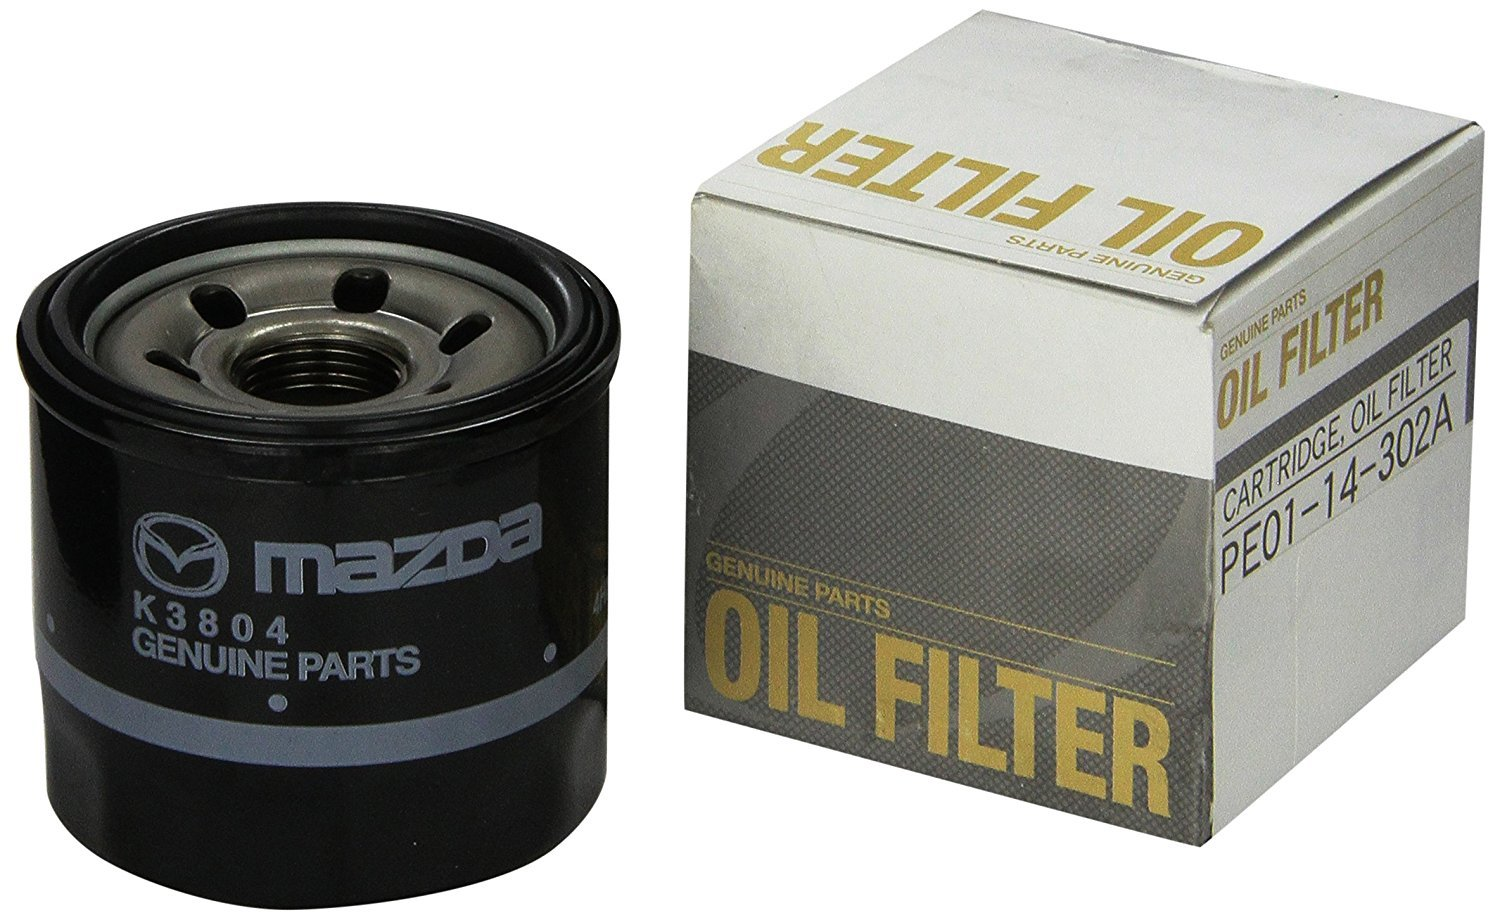 1WPE-14-302 Genuine Mazda Oil Filter Cartridge